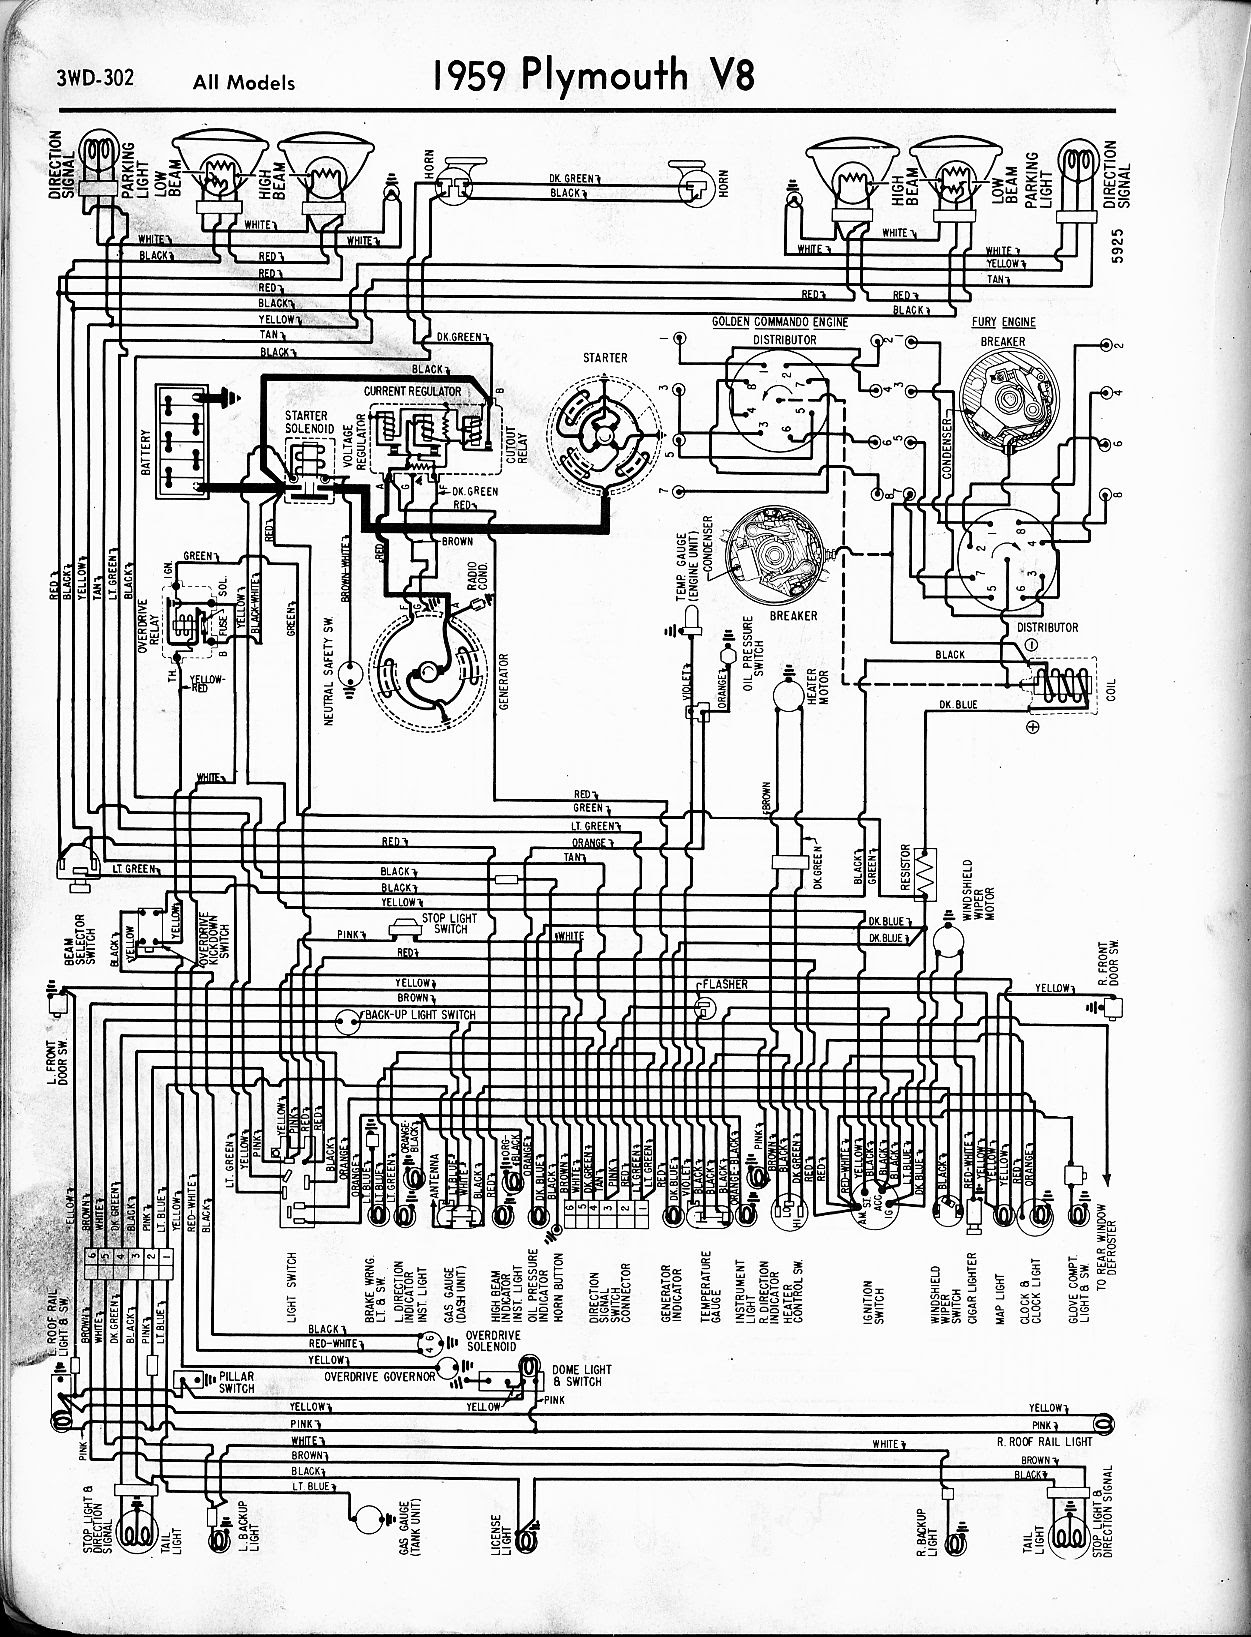 Diagram 1963 Plymouth Wiring Diagram Full Version Hd Quality Wiring Diagram Mindschematic2j Odontomedsas It